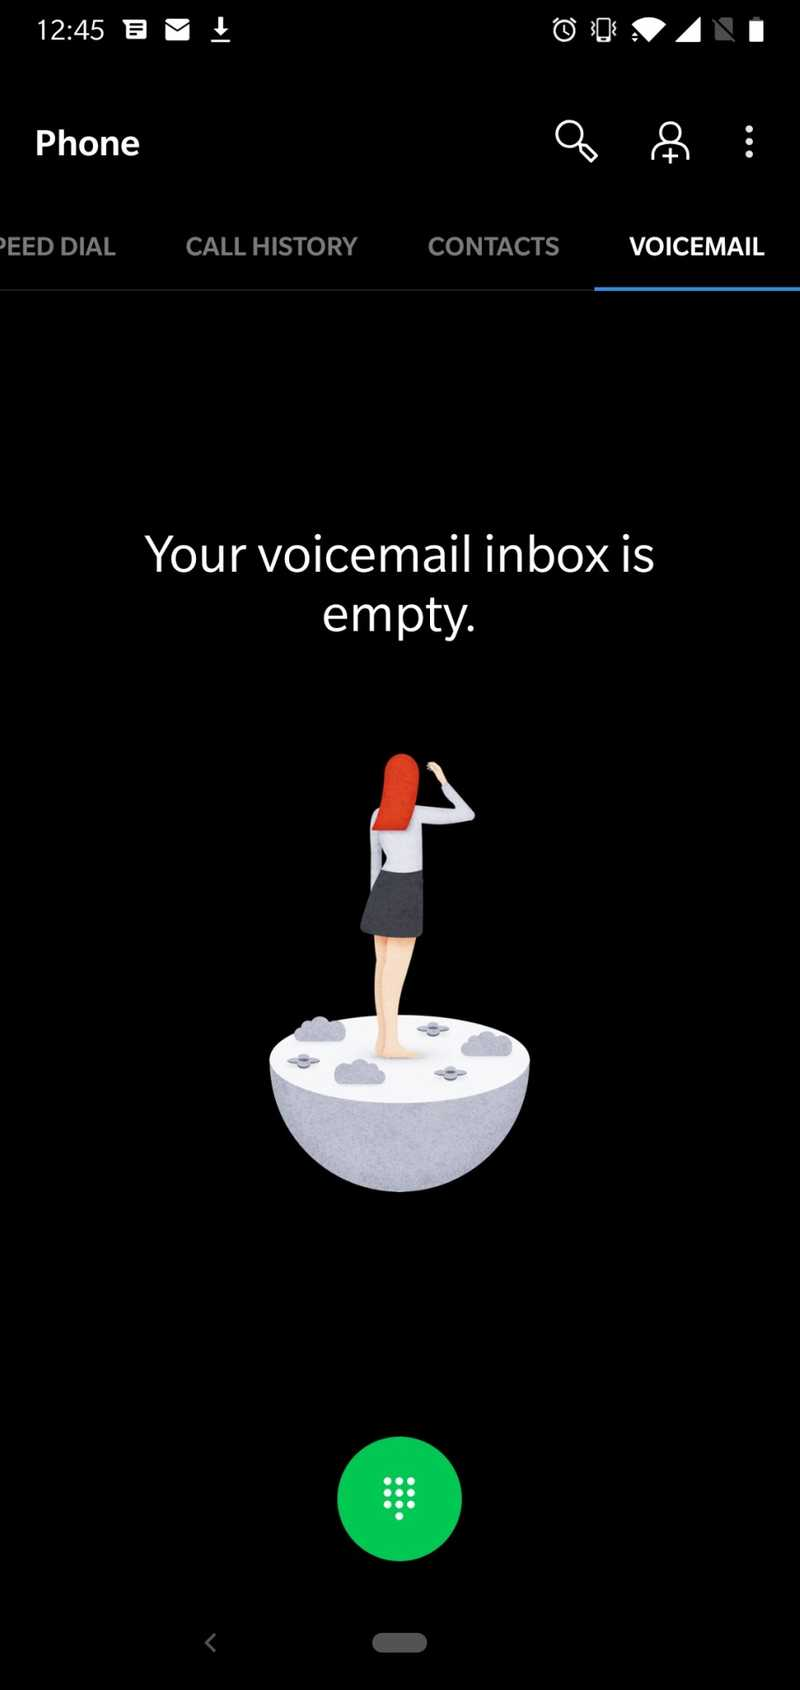 Screenshot of Voicemail inbox is empty in Oxygen OS